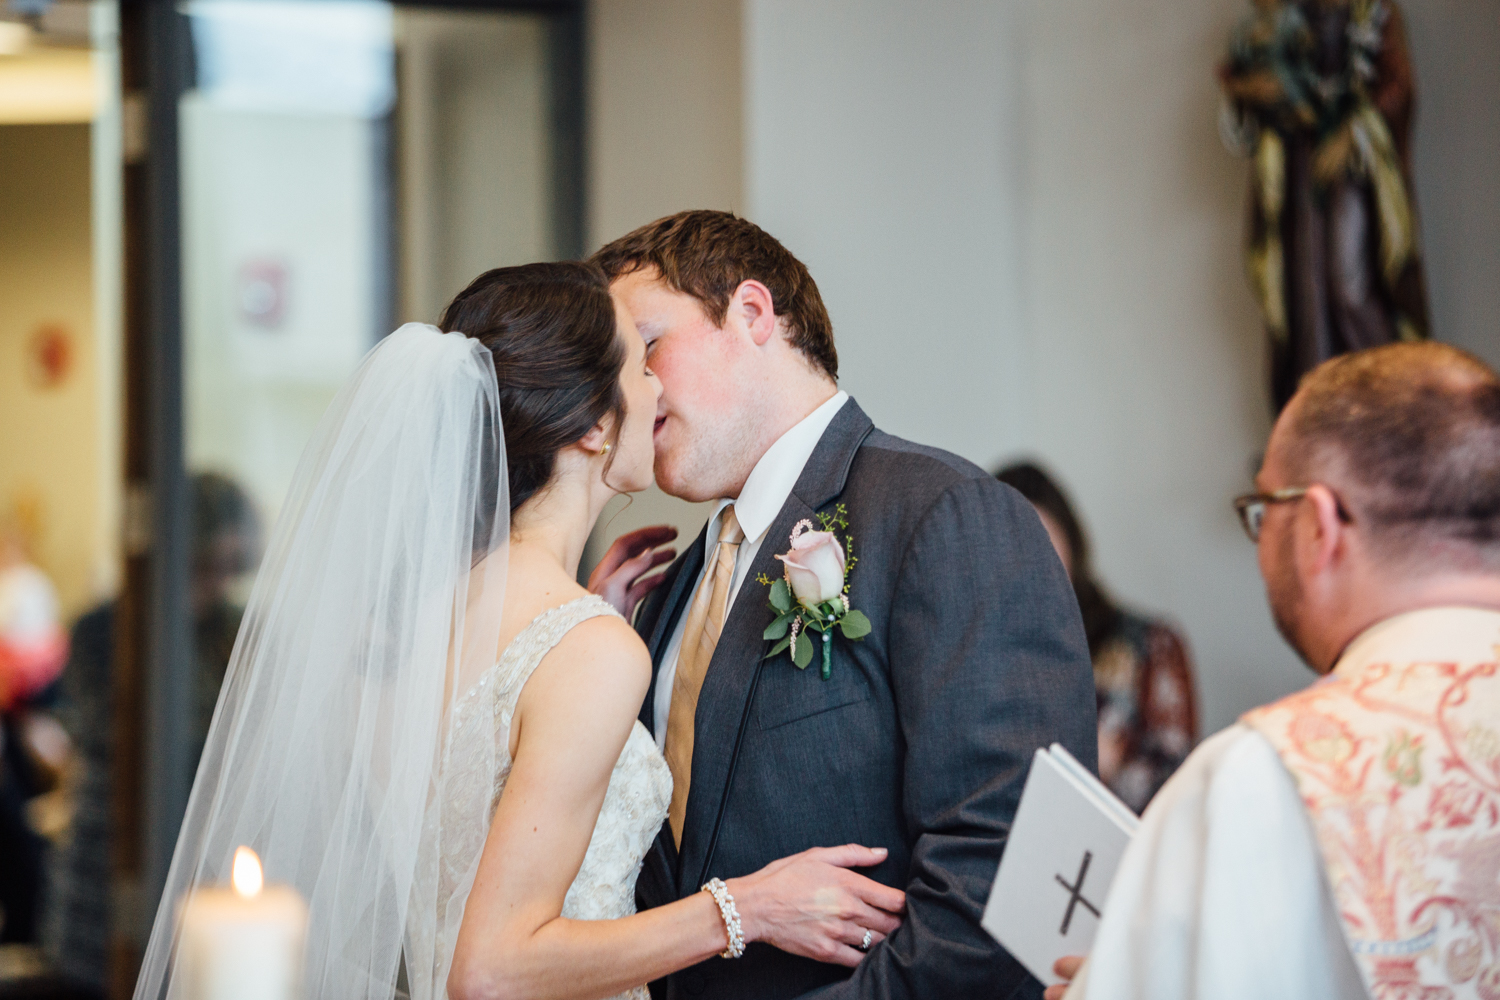 Fun, Intimate Spring Wedding by Corrie Mick Photography-46.jpg